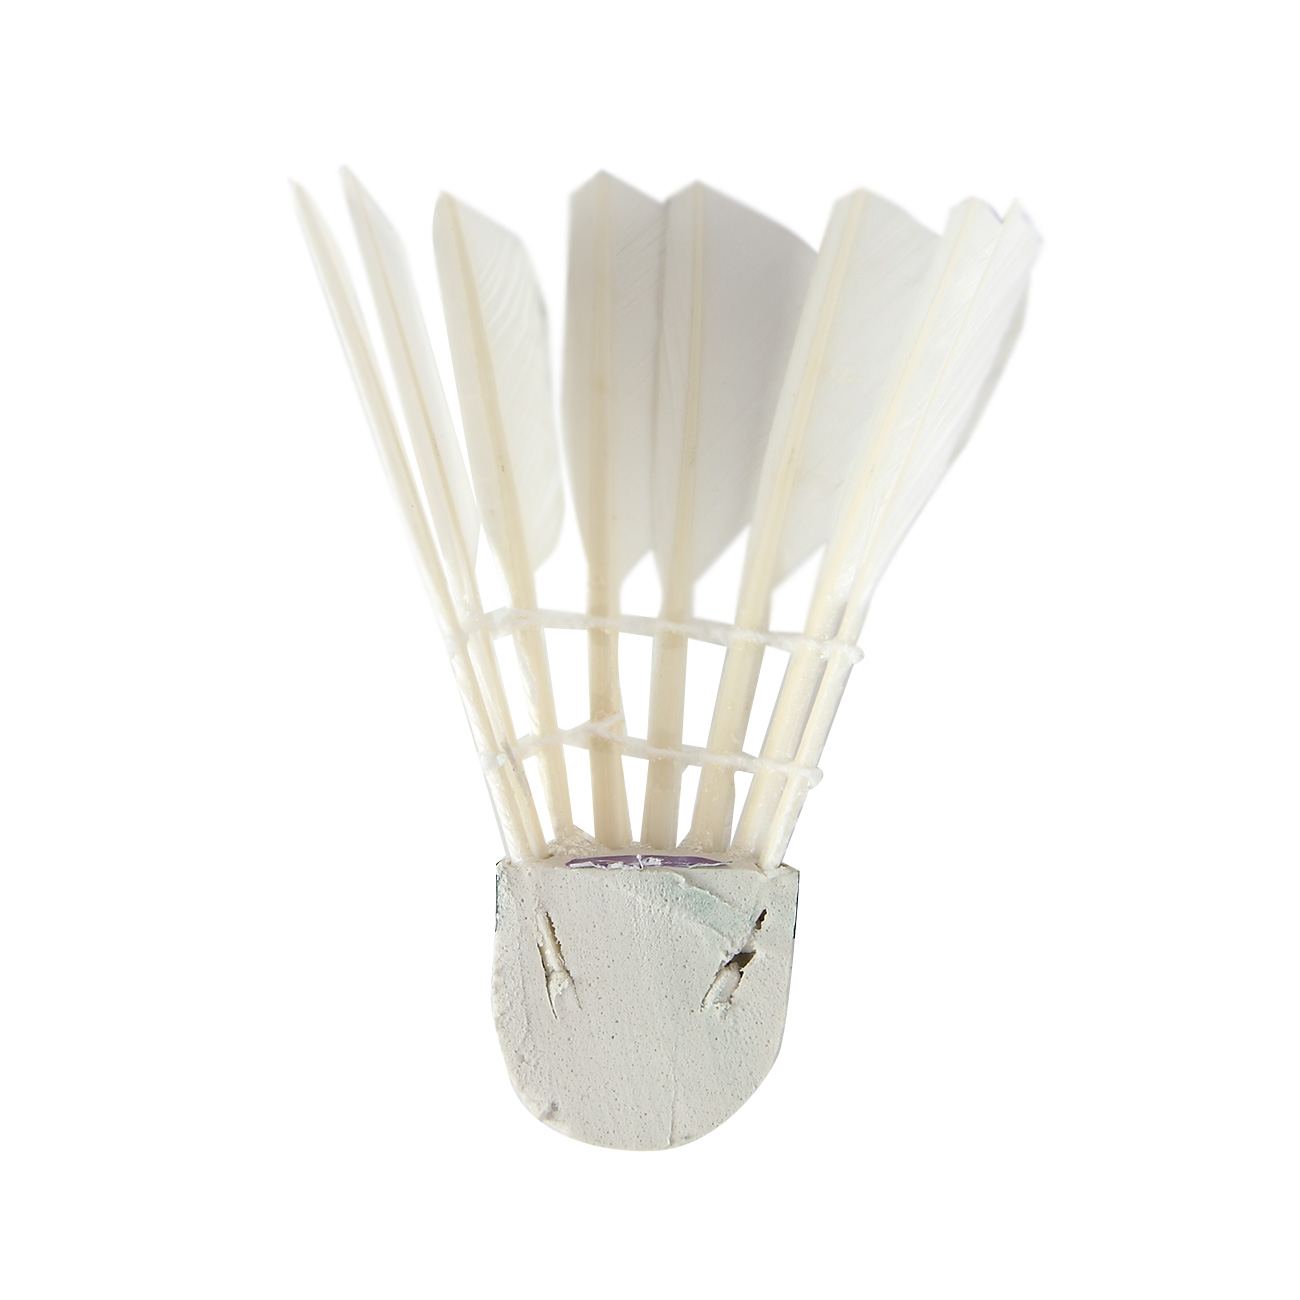 Cheap Price S2 Foam Head B level Feather Shuttlecock Badminton With Shuttlecock Packaging Box